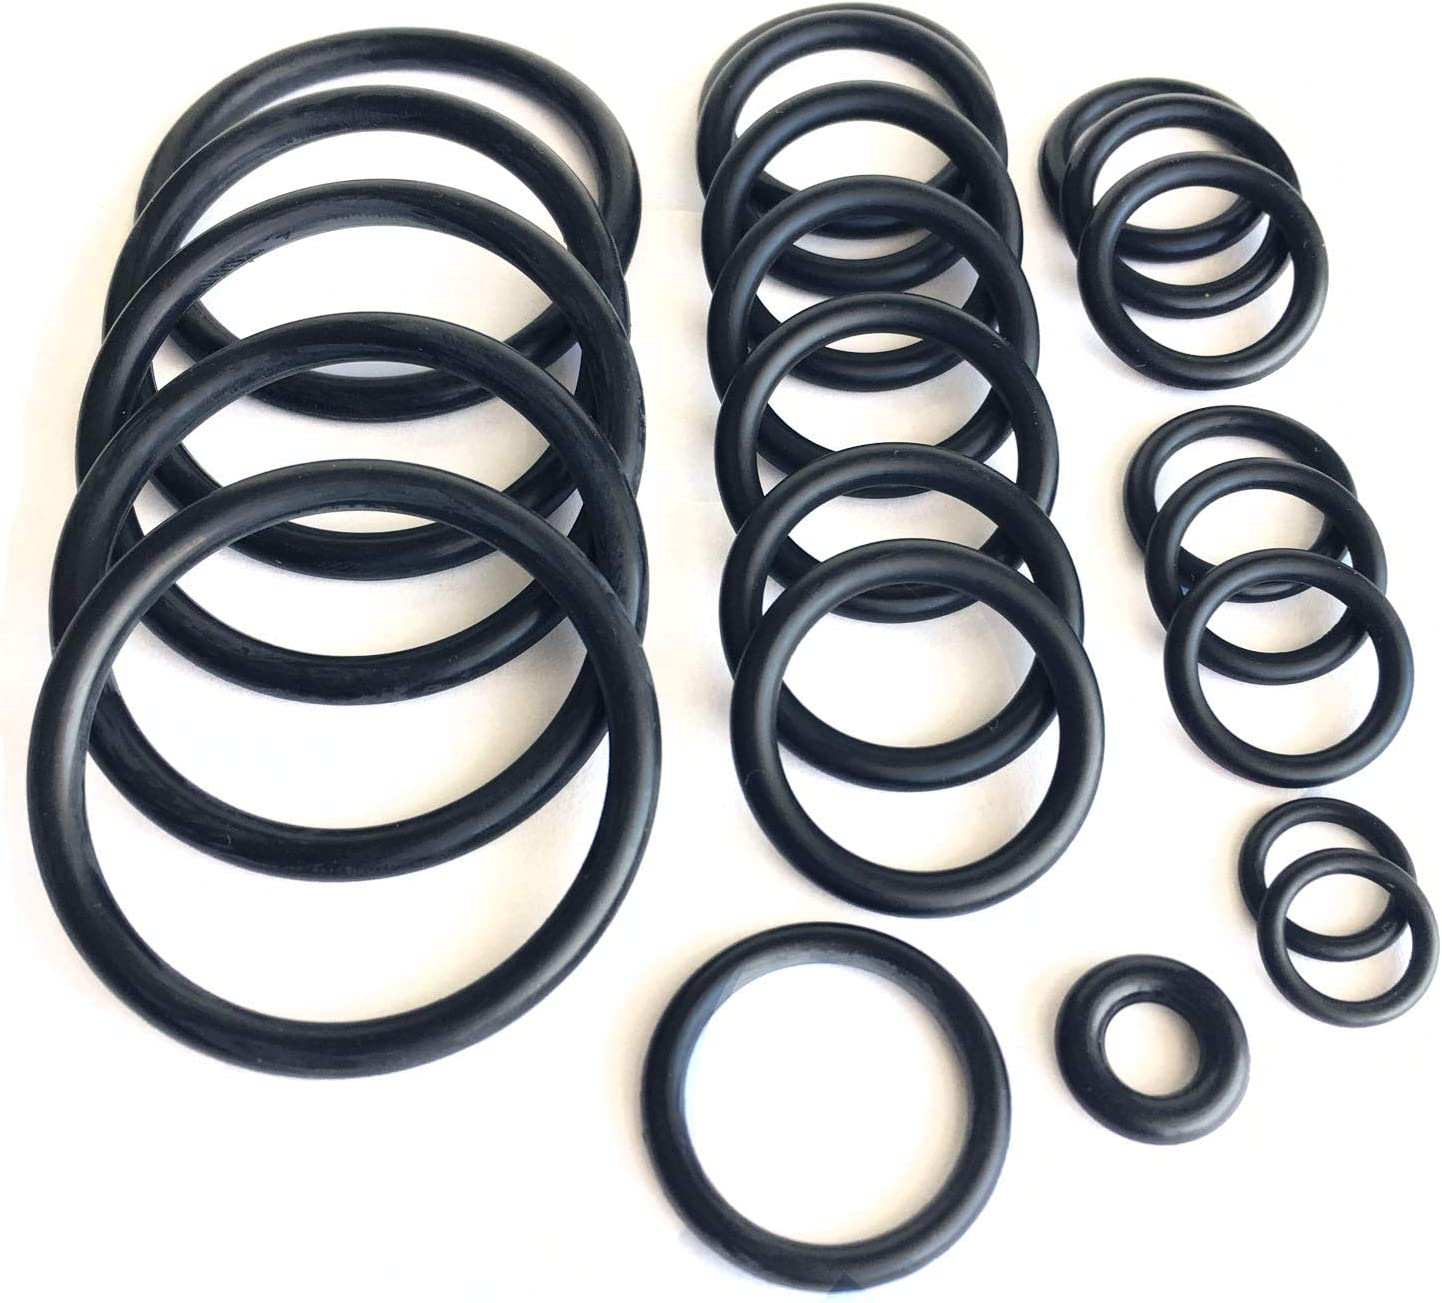 Cooling system radiator hose O ring set For BMW e46 N42 N46 316i 318i (4 Cylinders)